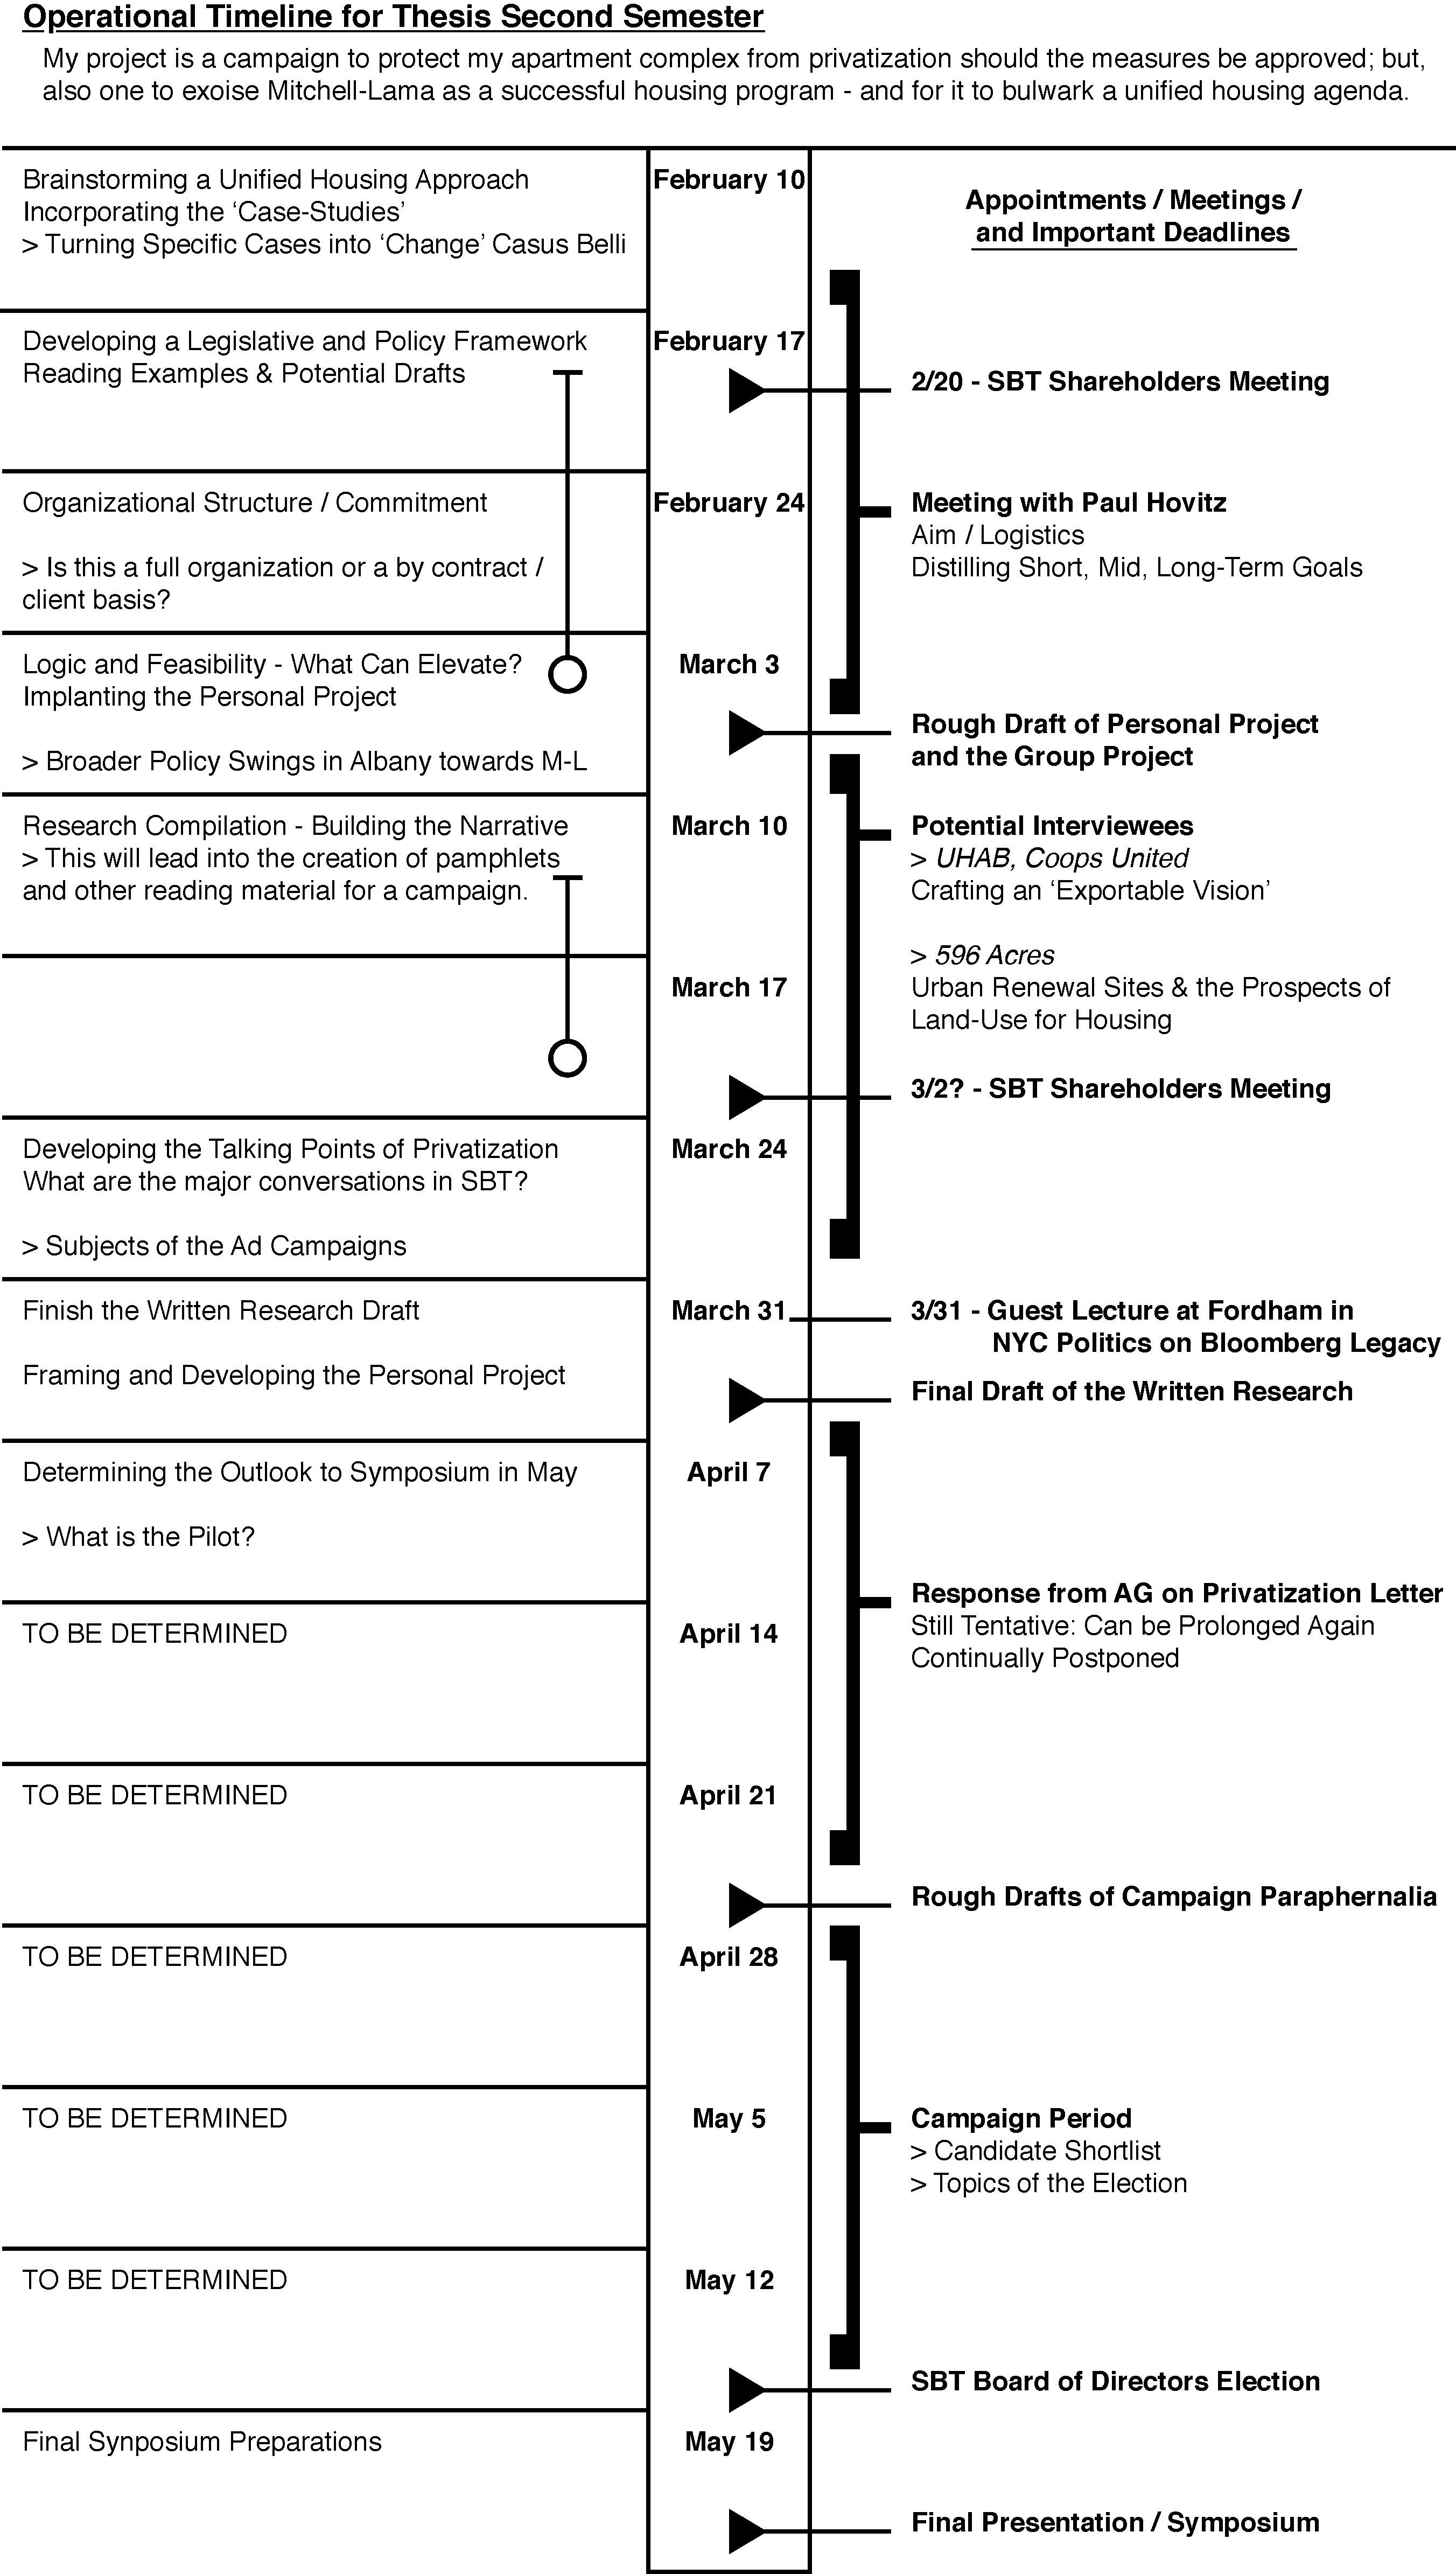 the manhattan project timeline custom paper help the manhattan project timeline